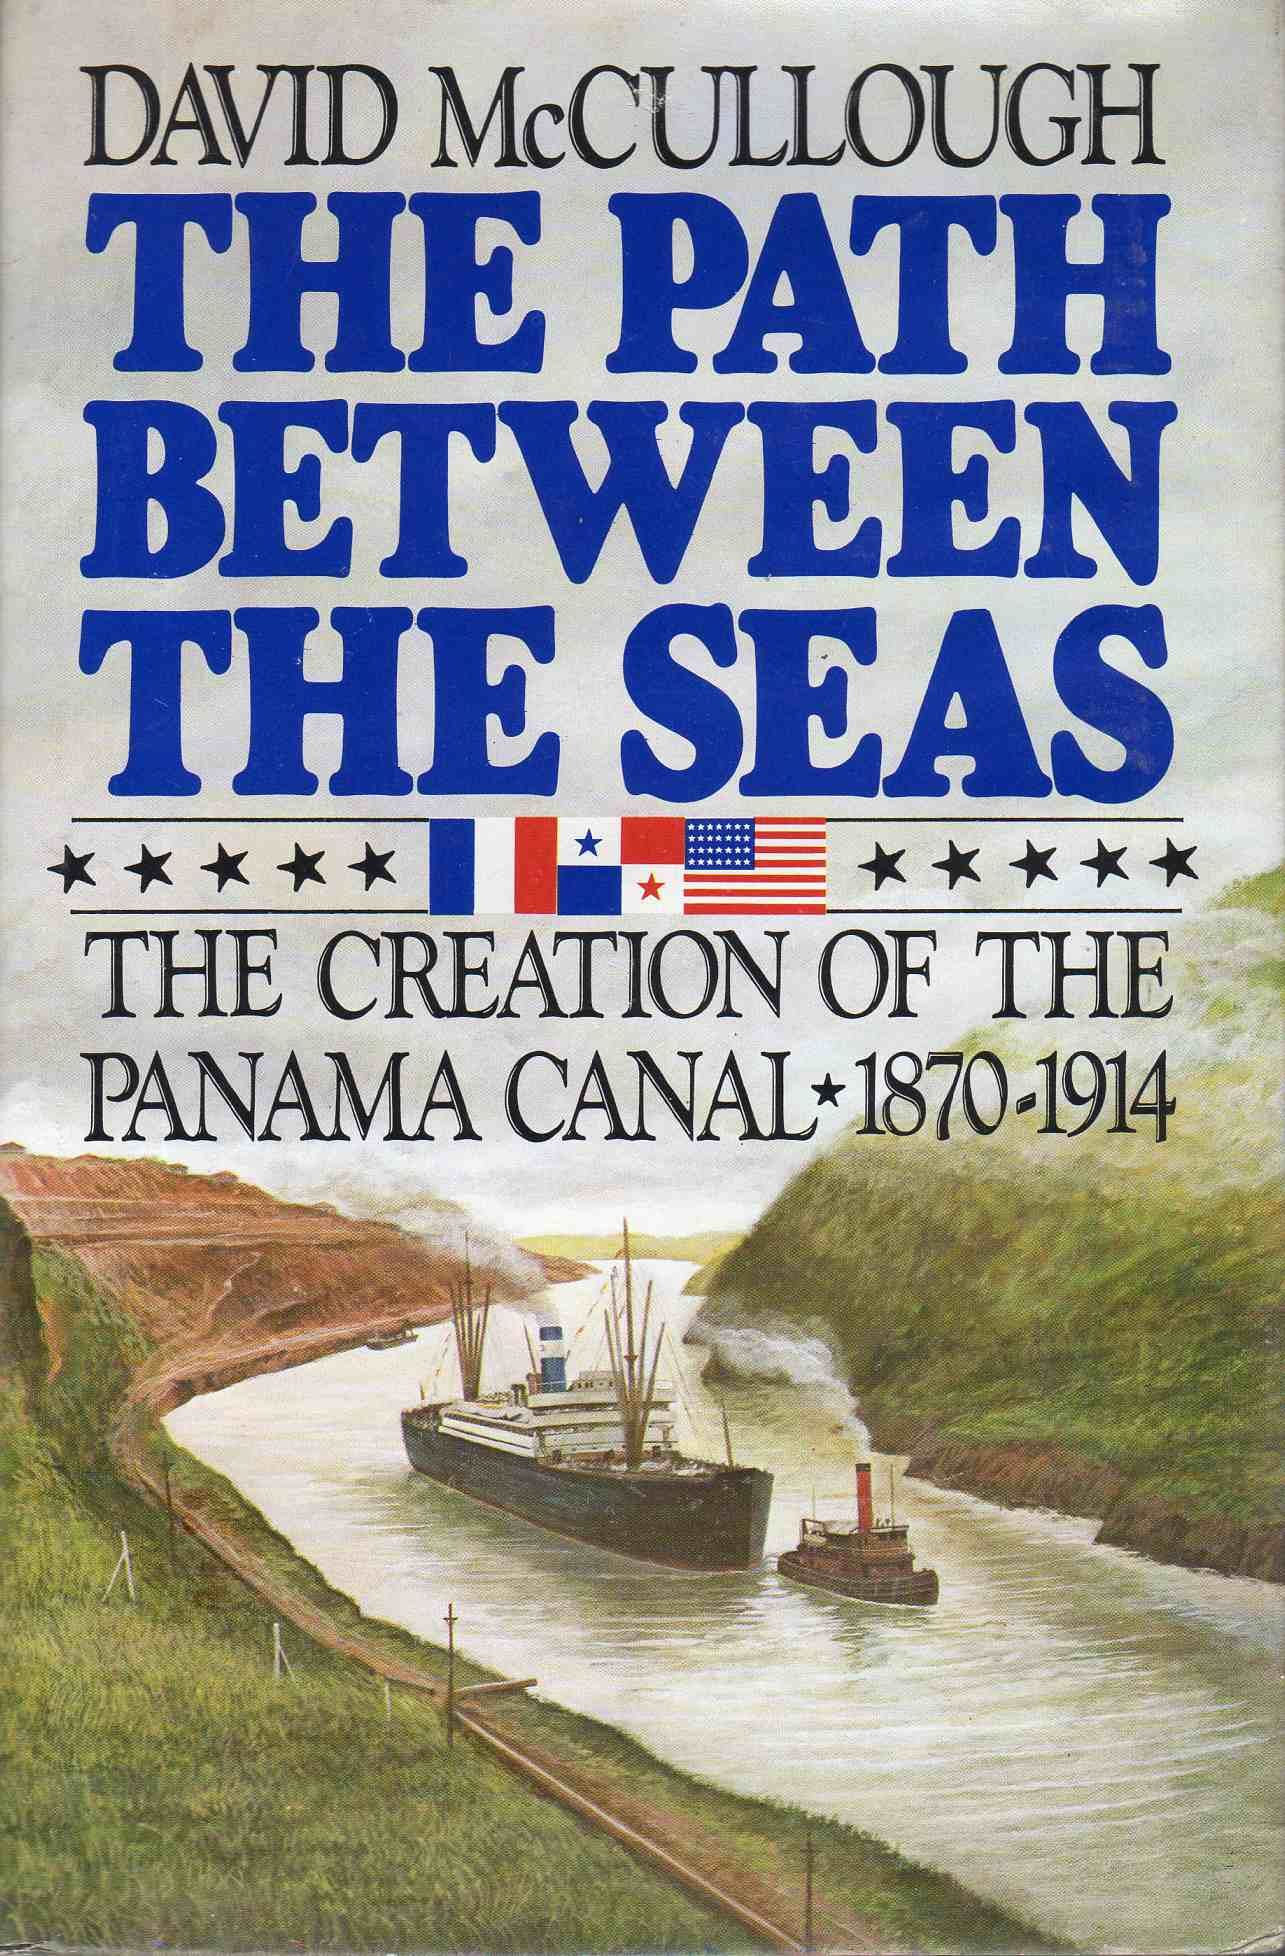 the creation of the panama canal The intent for the canal did not lie solely with the united states opening this great waterway for every nation's use was a precept in the canal's creation (todd, i: 30) the unrestricted, international usage of the panama canal was a precept in its creation.